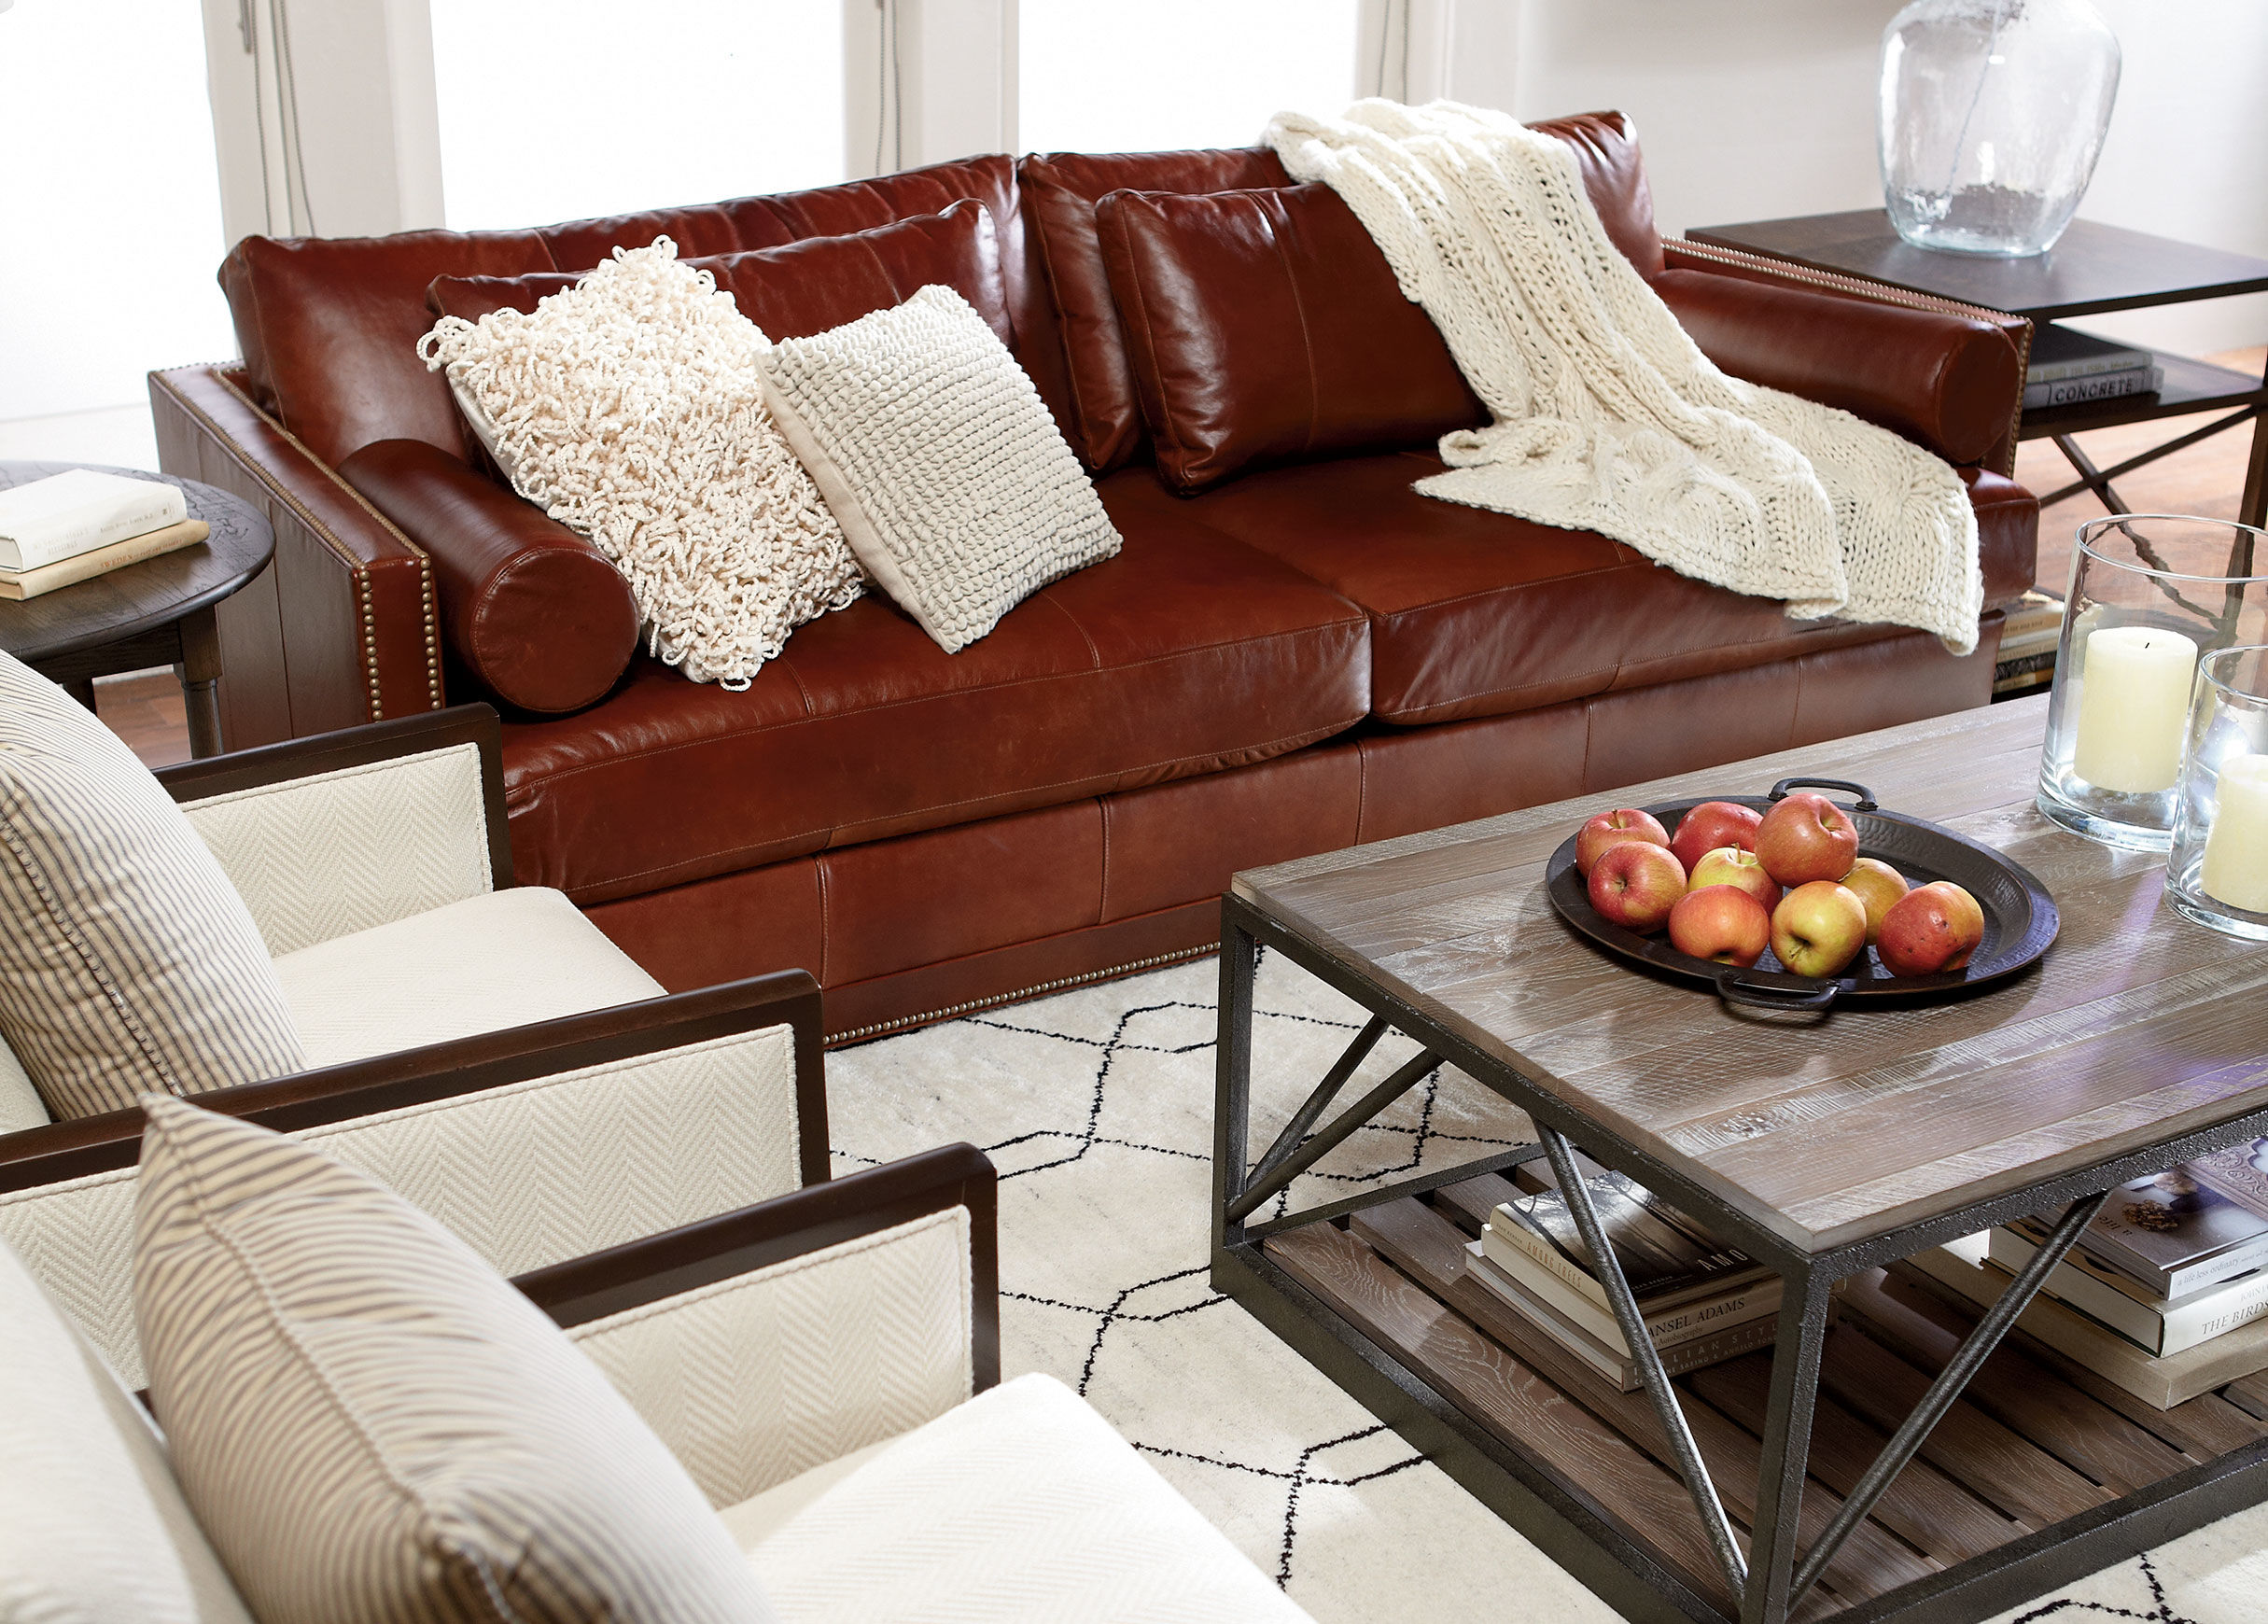 Ethan Allen Leather Furniture With Brown Sofa Completed Comfy Cushions And Blanket Plus Rustic